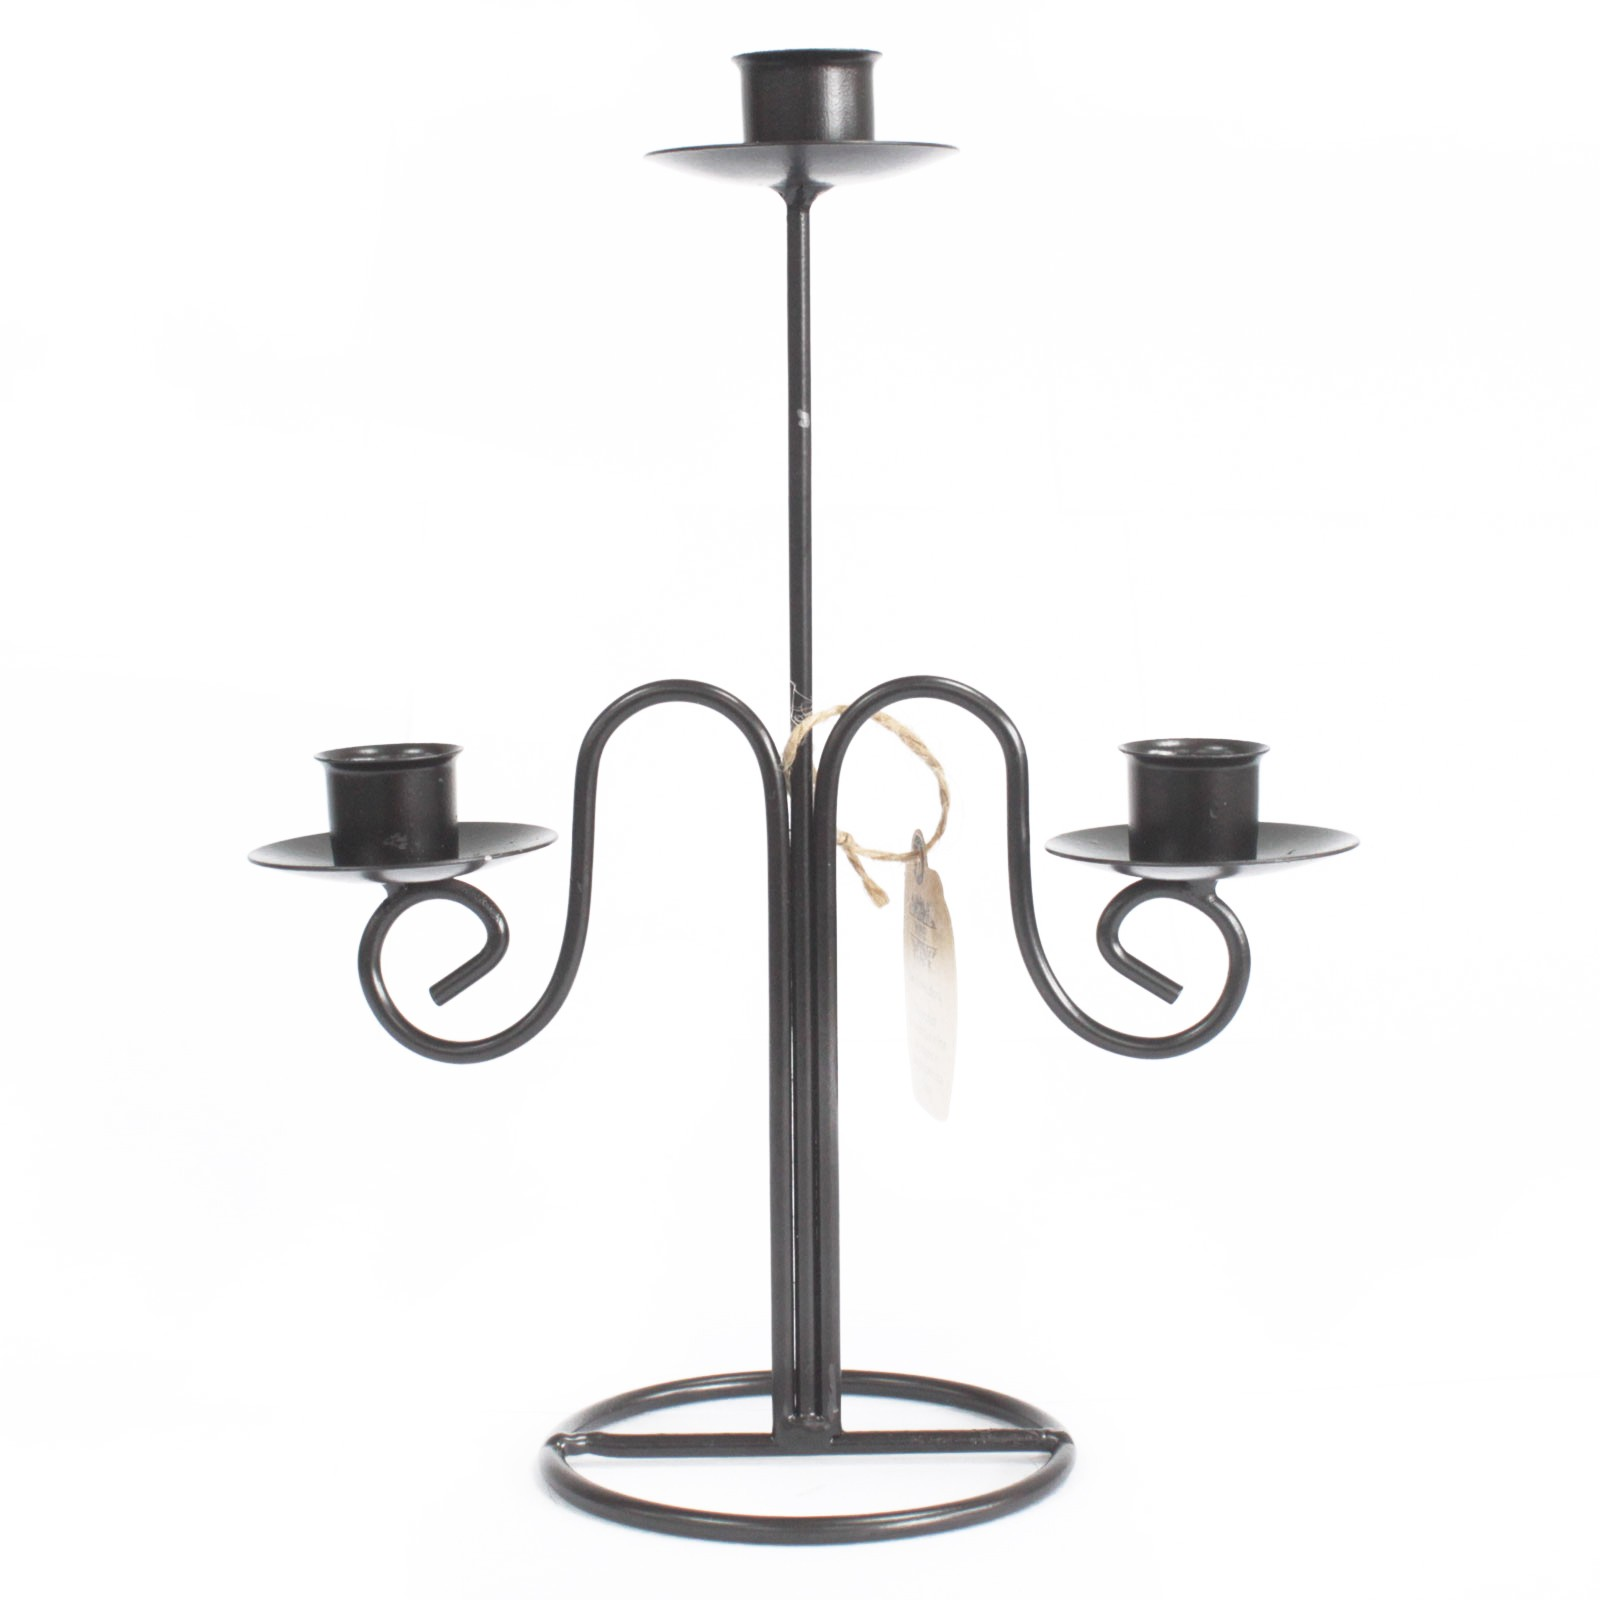 Iron Candle Holder - Tri Stick Elegant